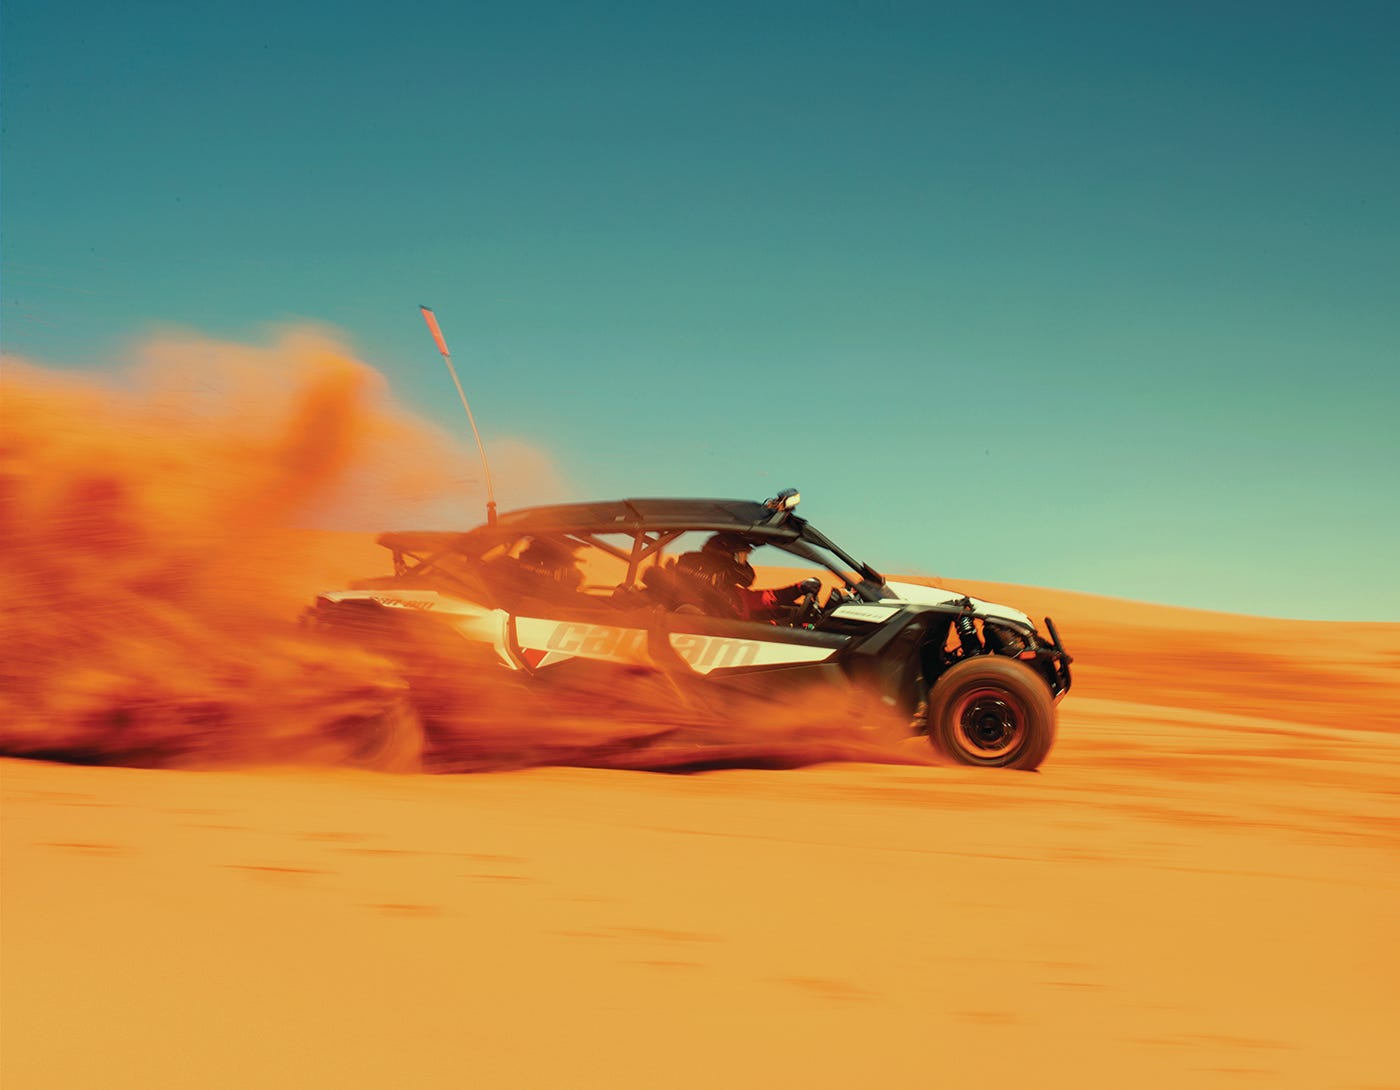 Off-Road Vehicle in the desert